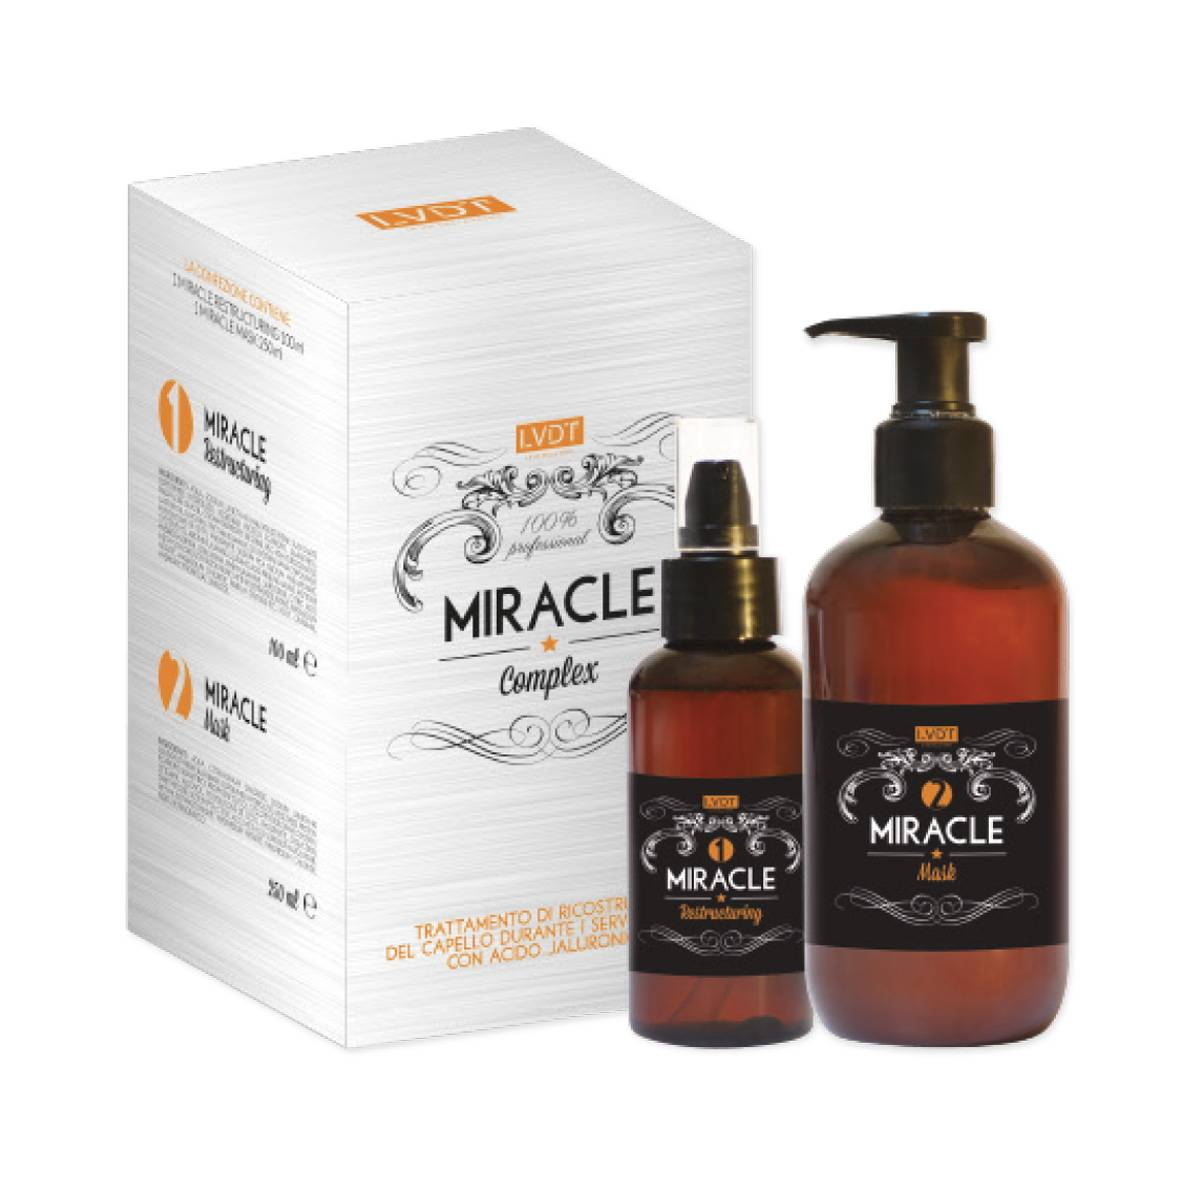 Miracle Complex Kit Lvdt